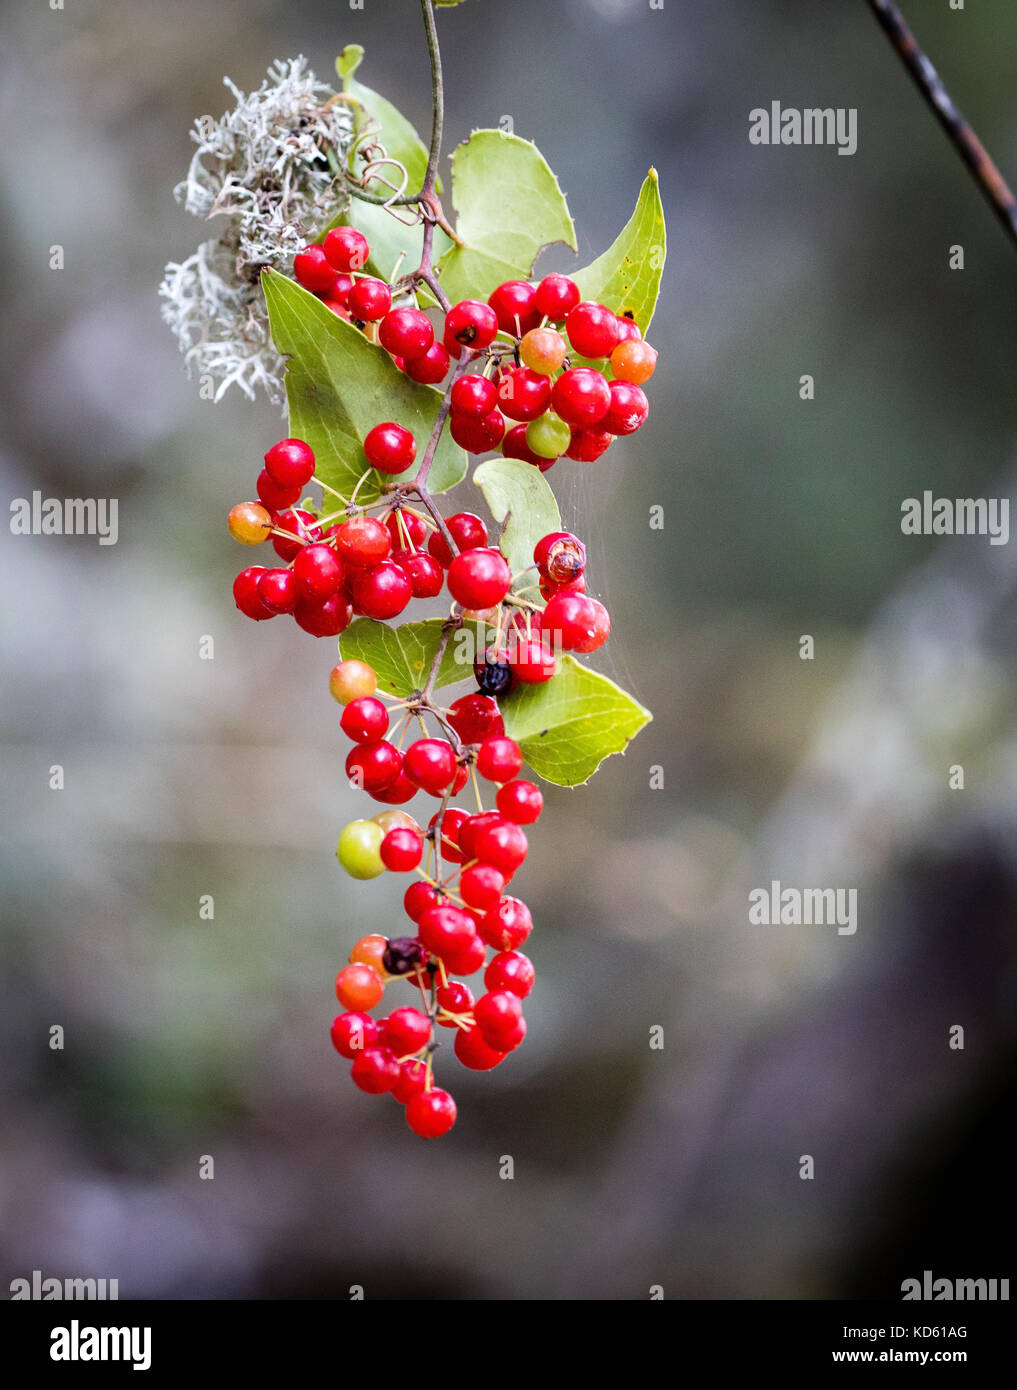 Scarlet berries of black bryony Tamus communis hanging from a tree branches on the island of Ithaka in Greece - Stock Image